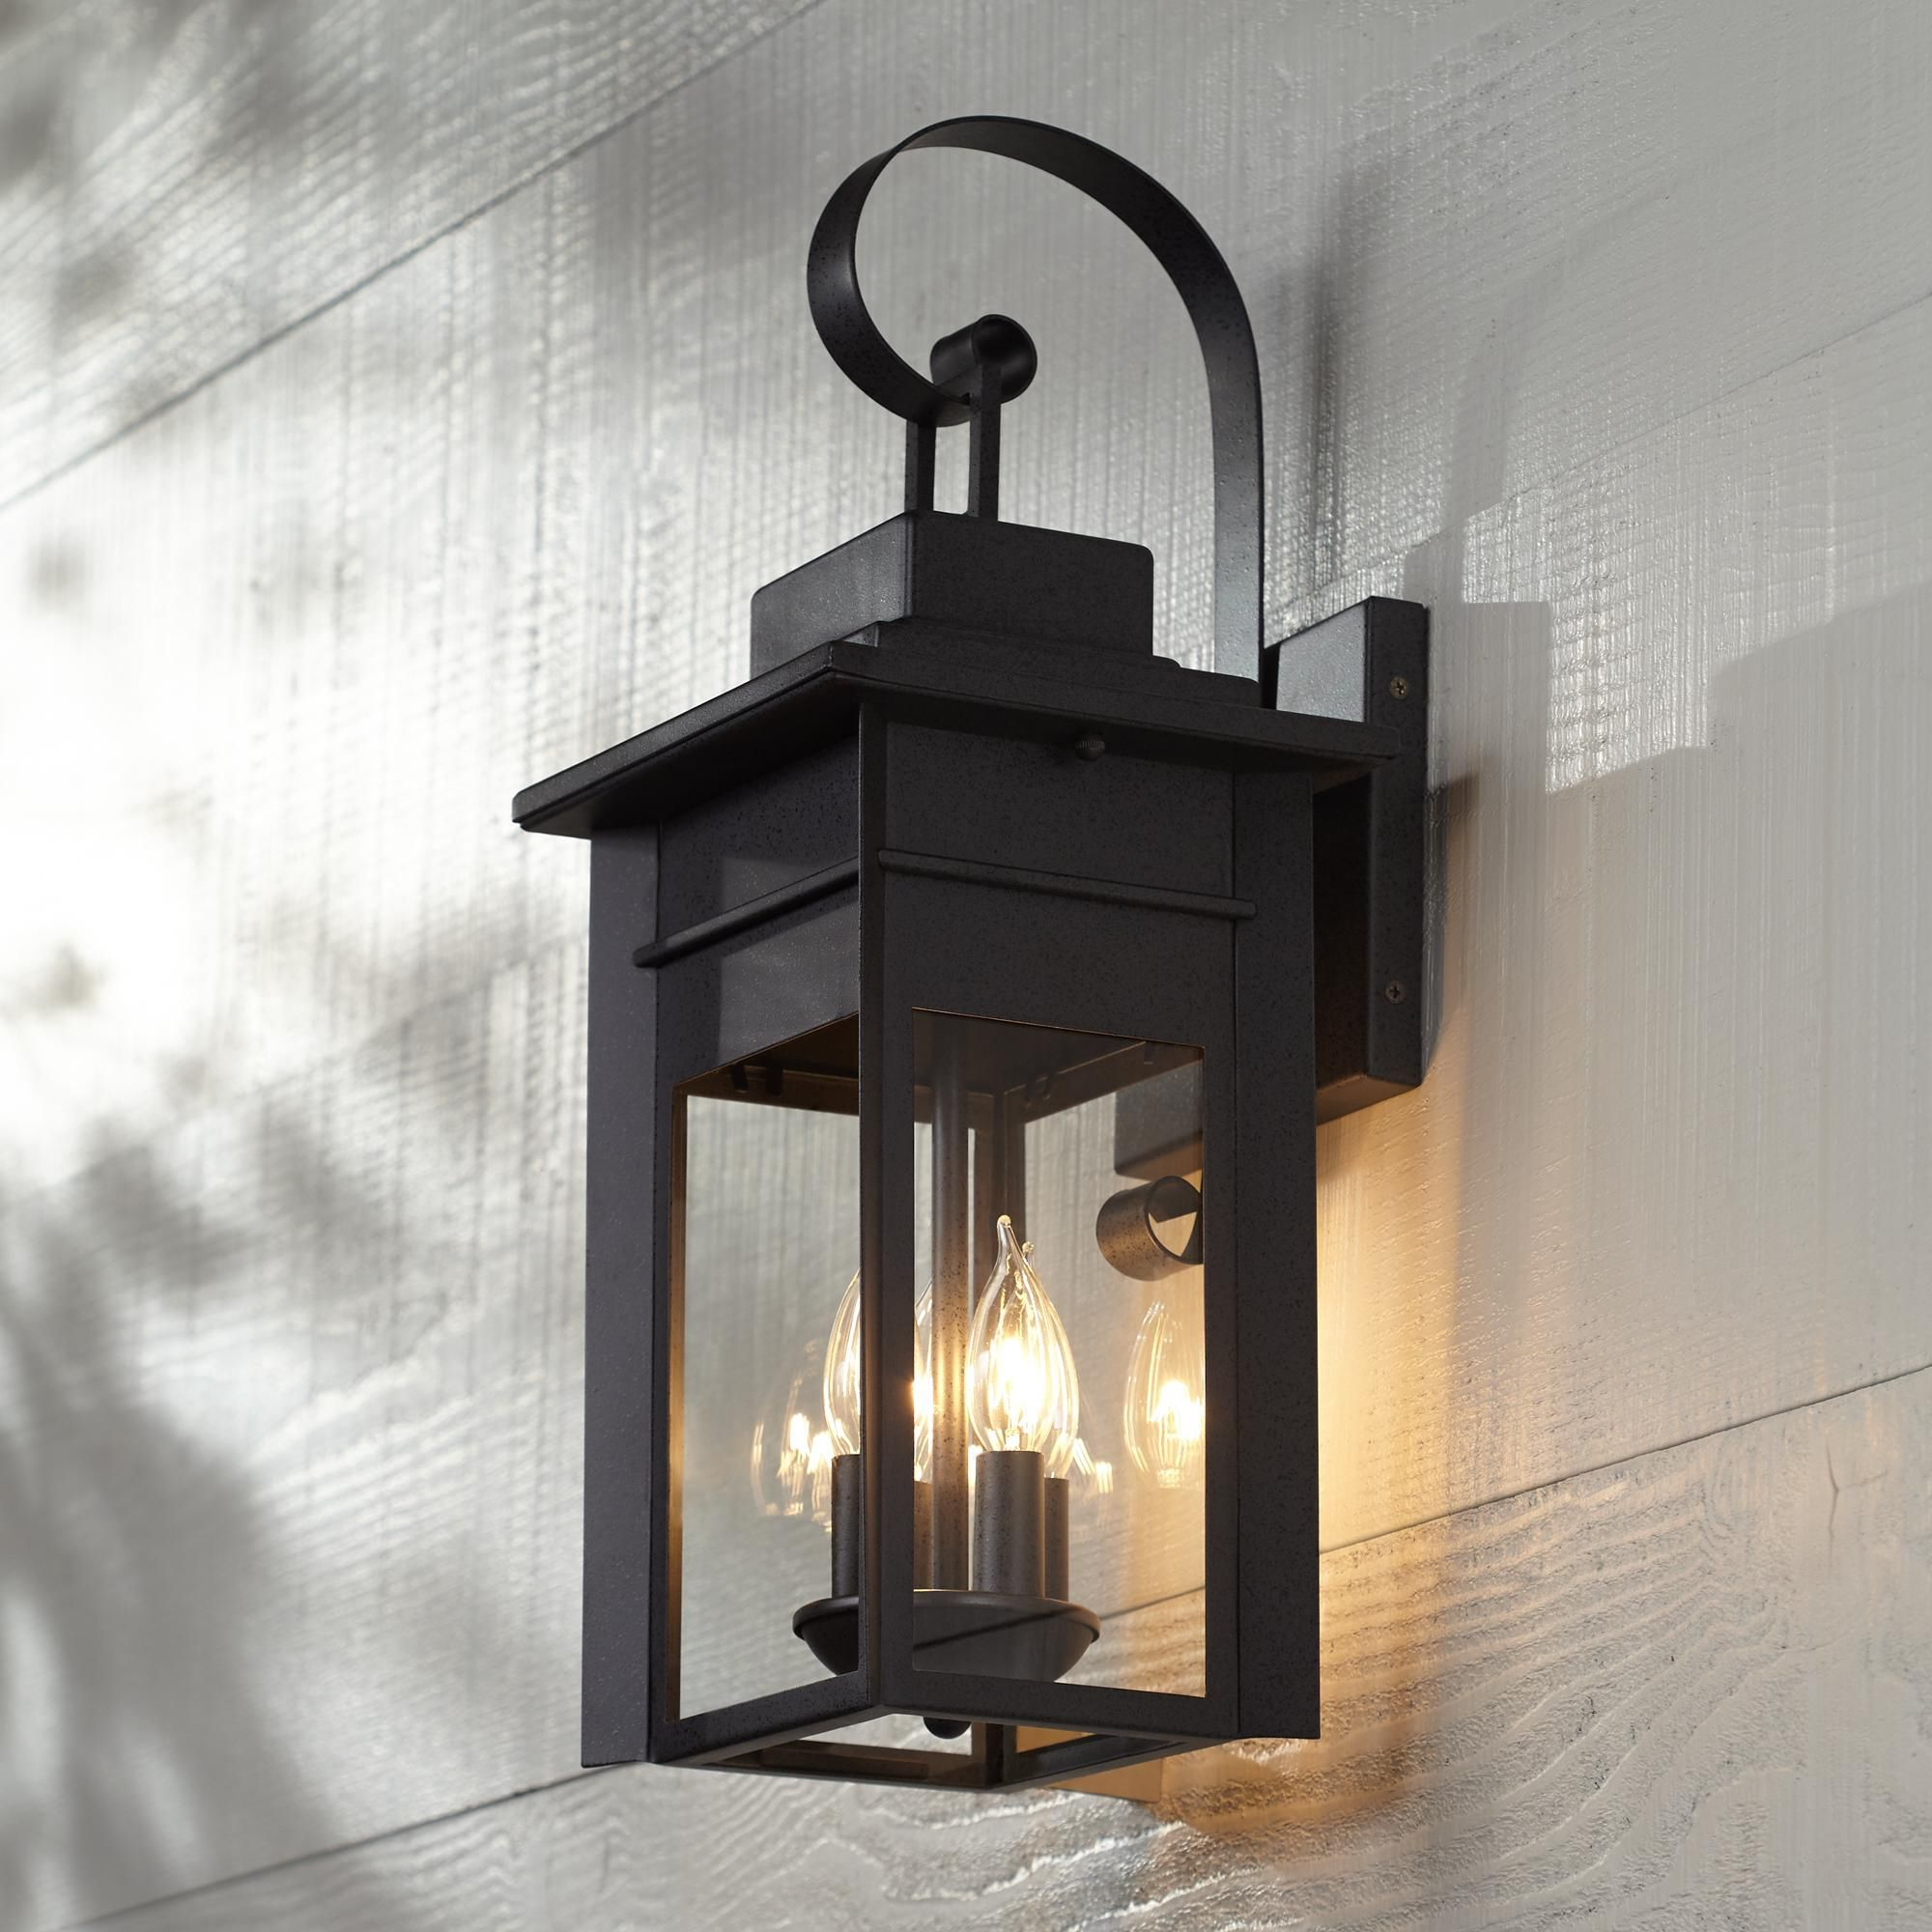 """Recent Bransford 21"""" High Black Specked Gray Outdoor Wall Light In Walland Black Outdoor Wall Lanterns (View 2 of 20)"""